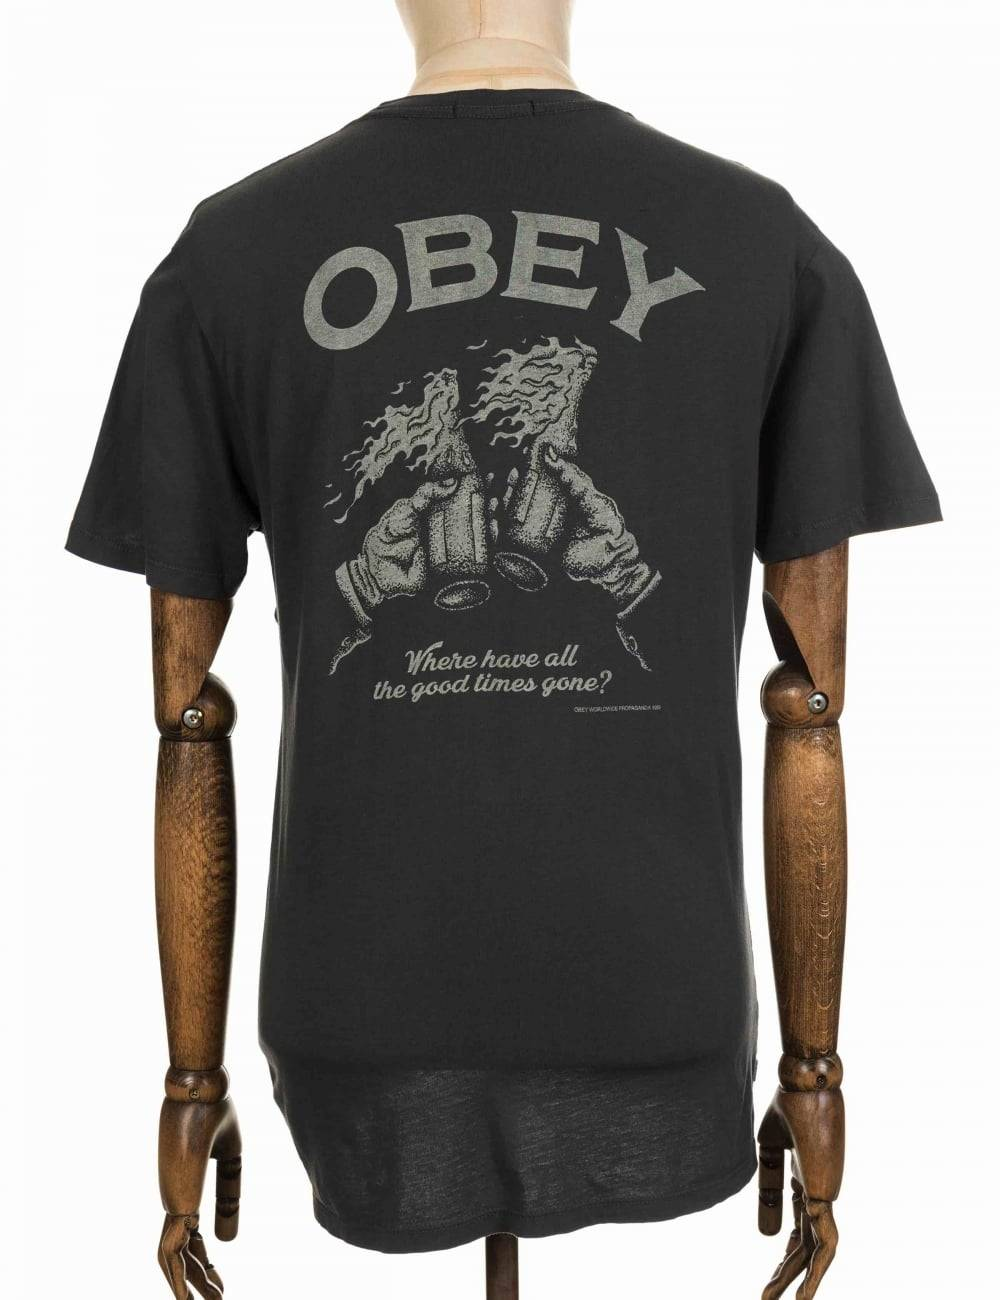 Obey Clothing Good Times Gone Tee - Pirate Black Colour: Pirate Black